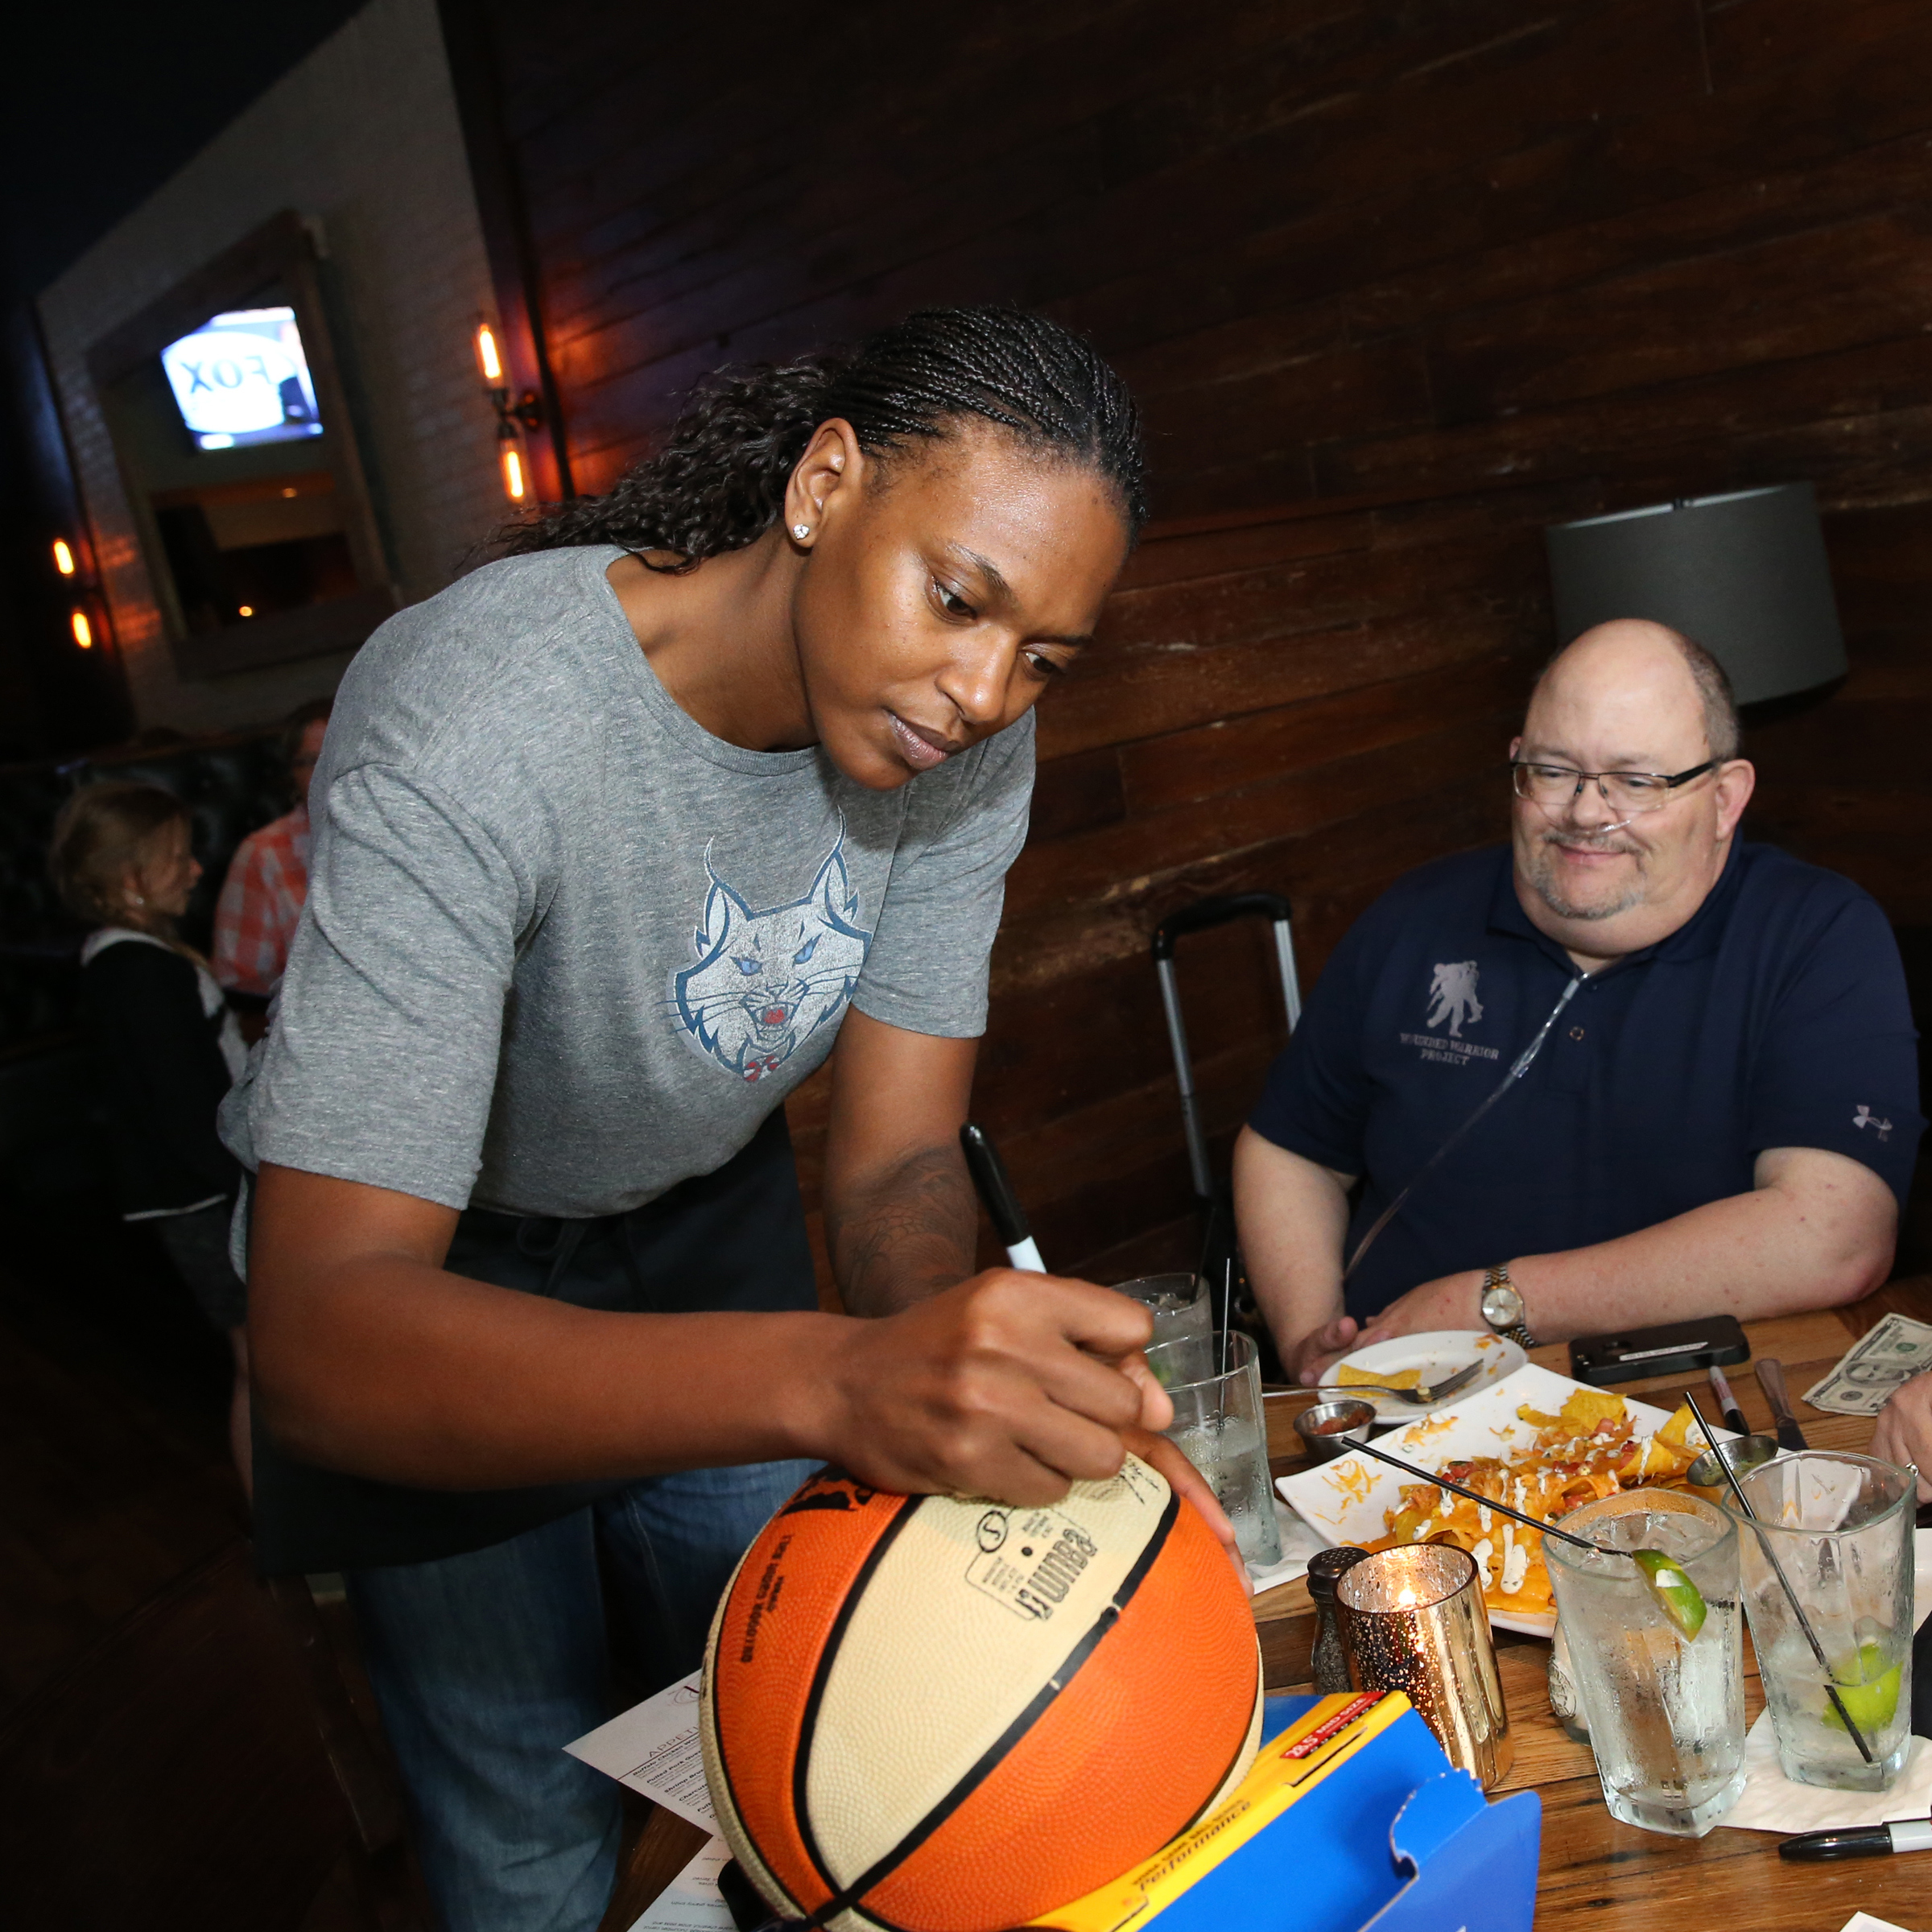 MINNEAPOLIS, MN - JUNE 3:  Asjha Jones #15 of the Minnesota Lynx signs autographs during the Tip-A-Lynx fundraiser to benefit the Minnesota Lynx Fastbreak Foundation on June 3, 2015 at the Loop West End Bar & Restaurant in Minneapolis, Minnesota.  NOTE TO USER: User expressly acknowledges and agrees that, by downloading and or using this Photograph, user is consenting to the terms and conditions of the Getty Images License Agreement. Mandatory Copyright Notice: Copyright 2015 NBAE (Photo by David Sherman/NBAE via Getty Images)